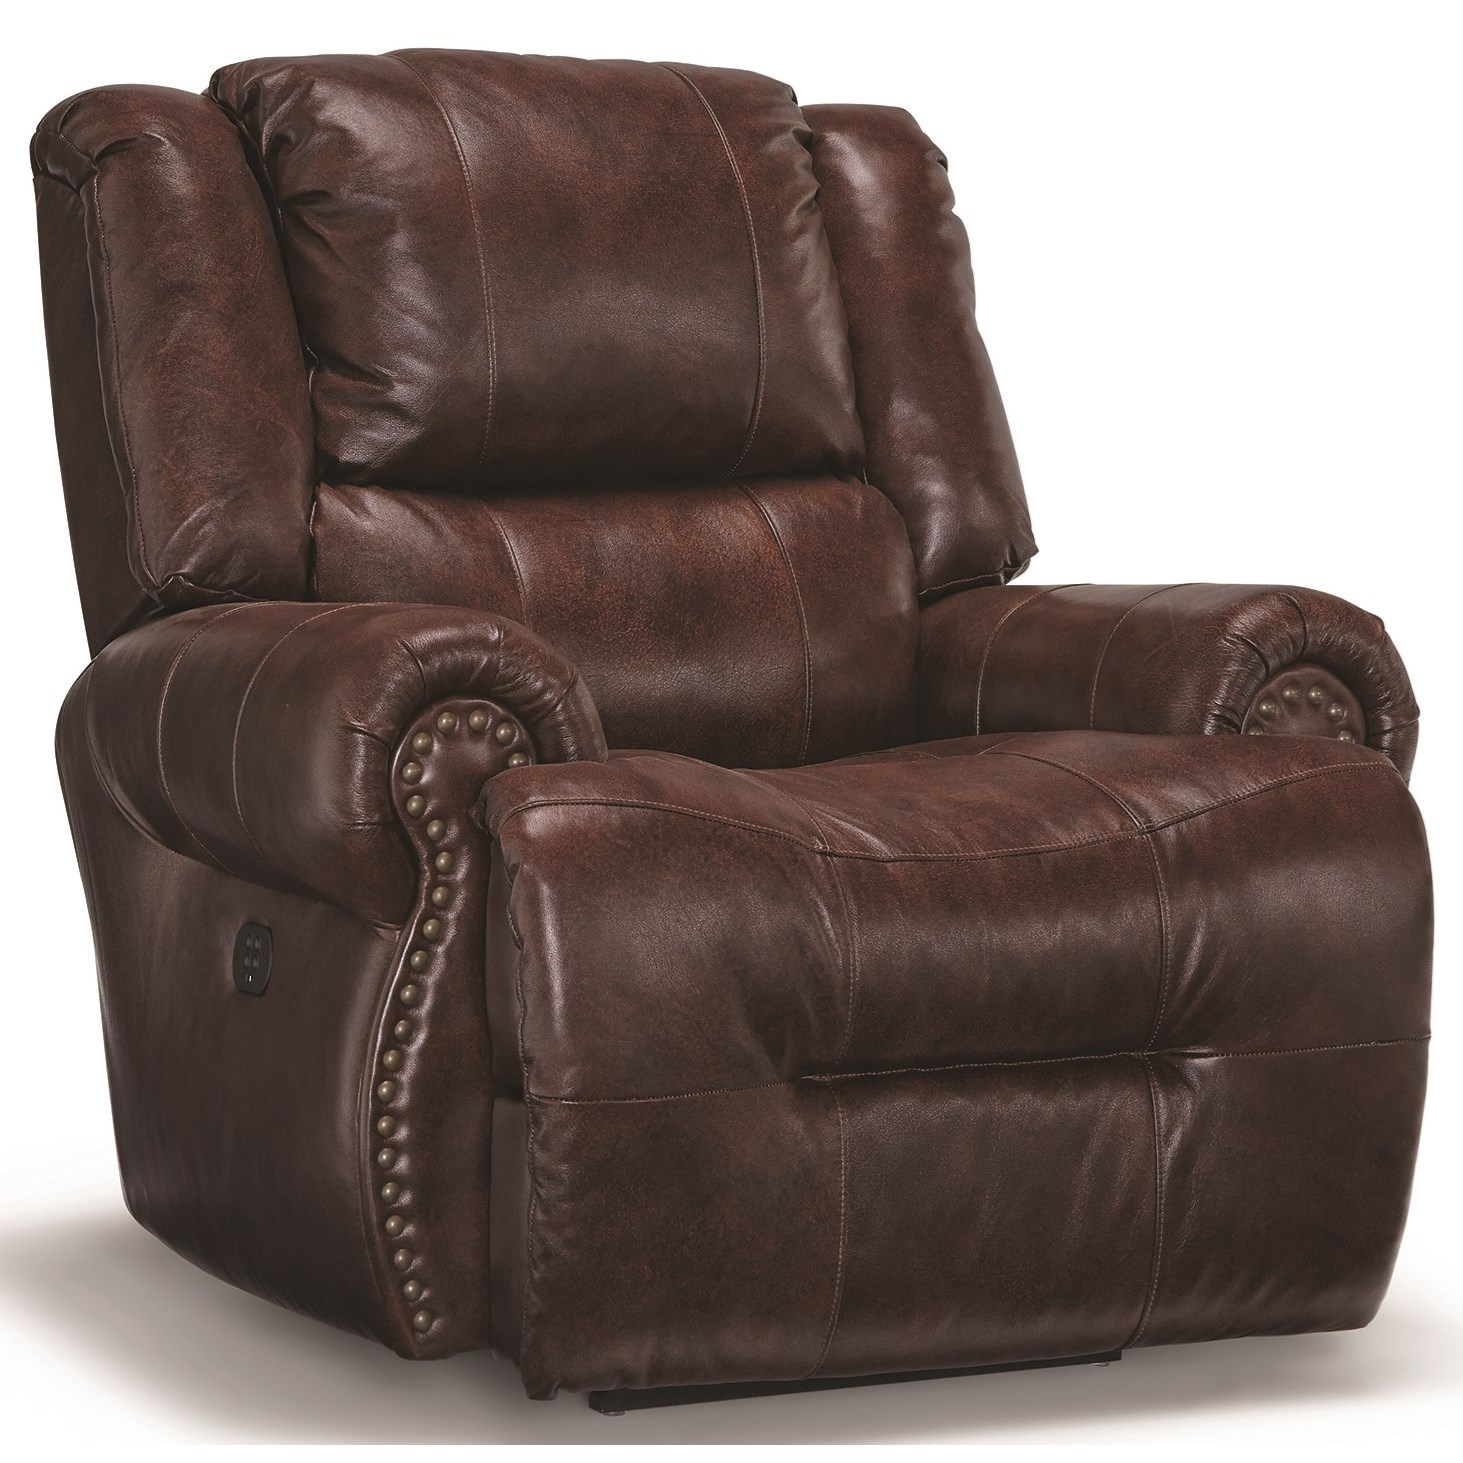 Genet Rocker Recliner by Best Home Furnishings at Novello Home Furnishings